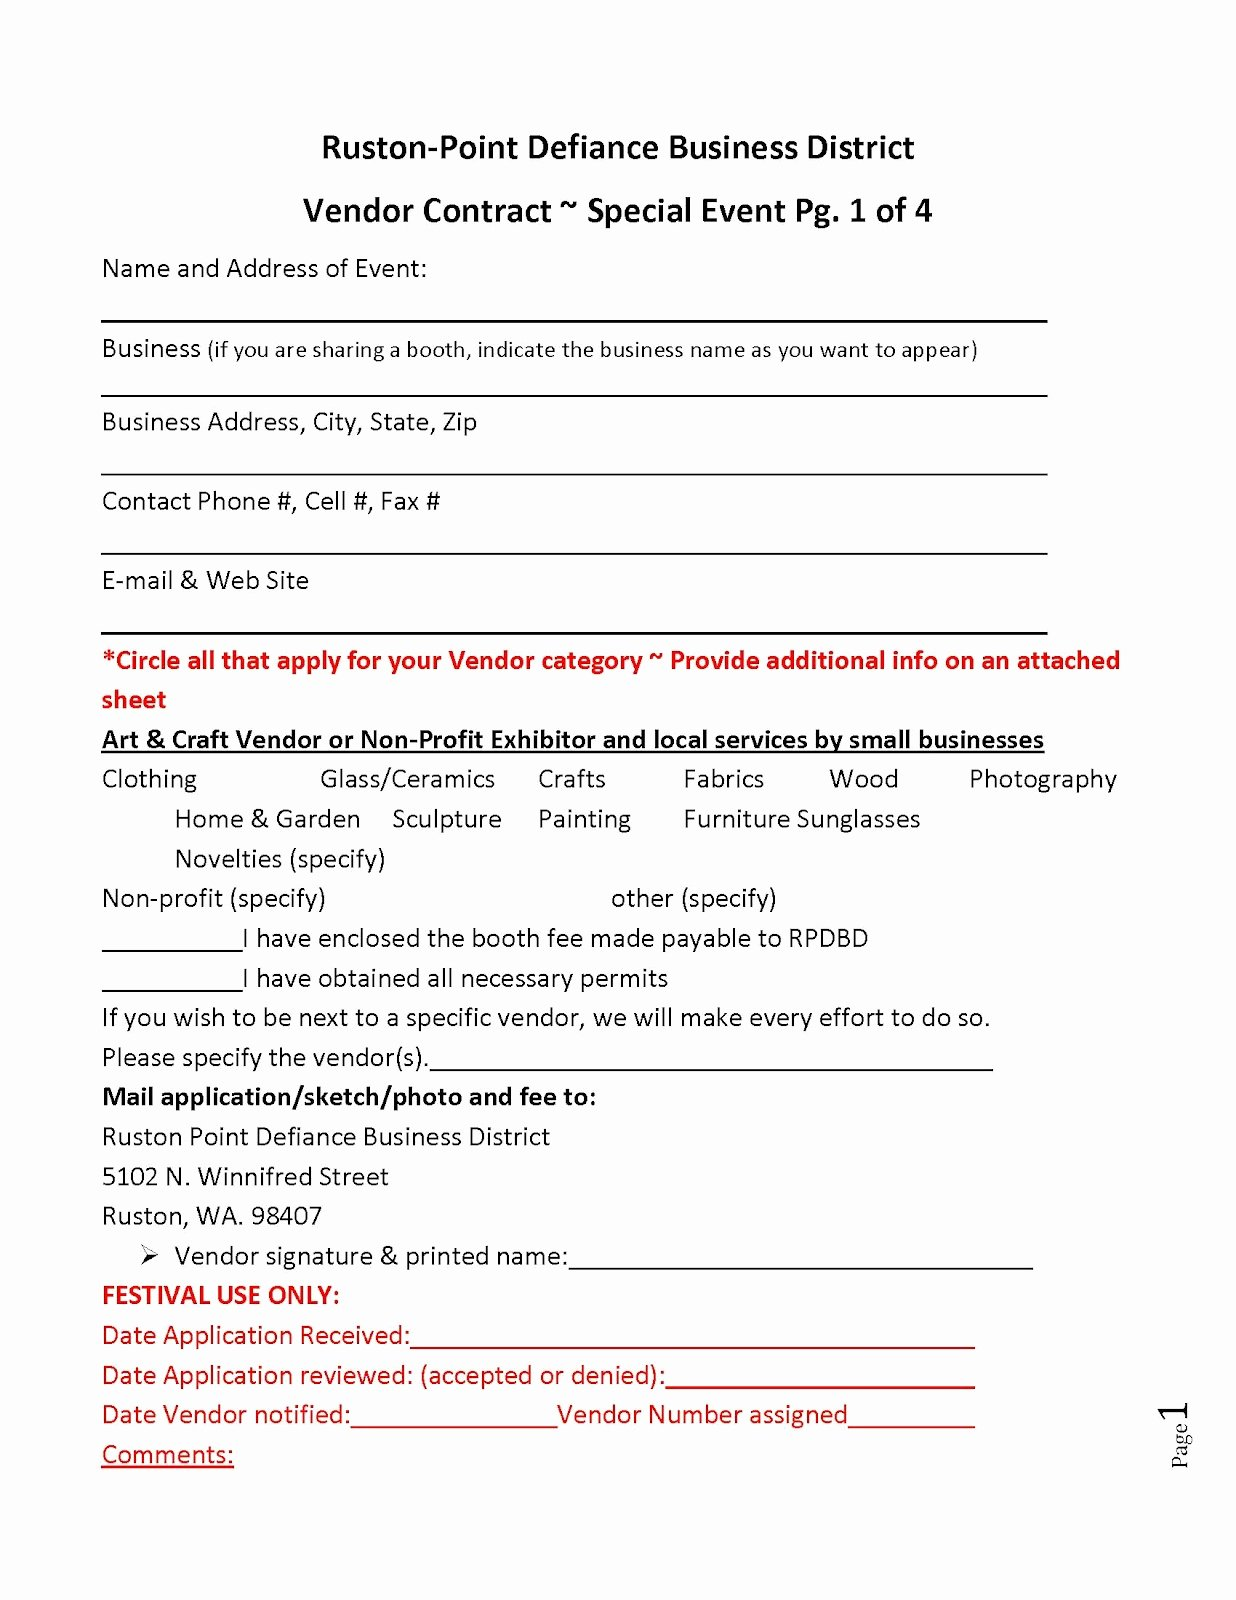 Vendor Contract for event Awesome Ruston Family Fair Vendor Contract